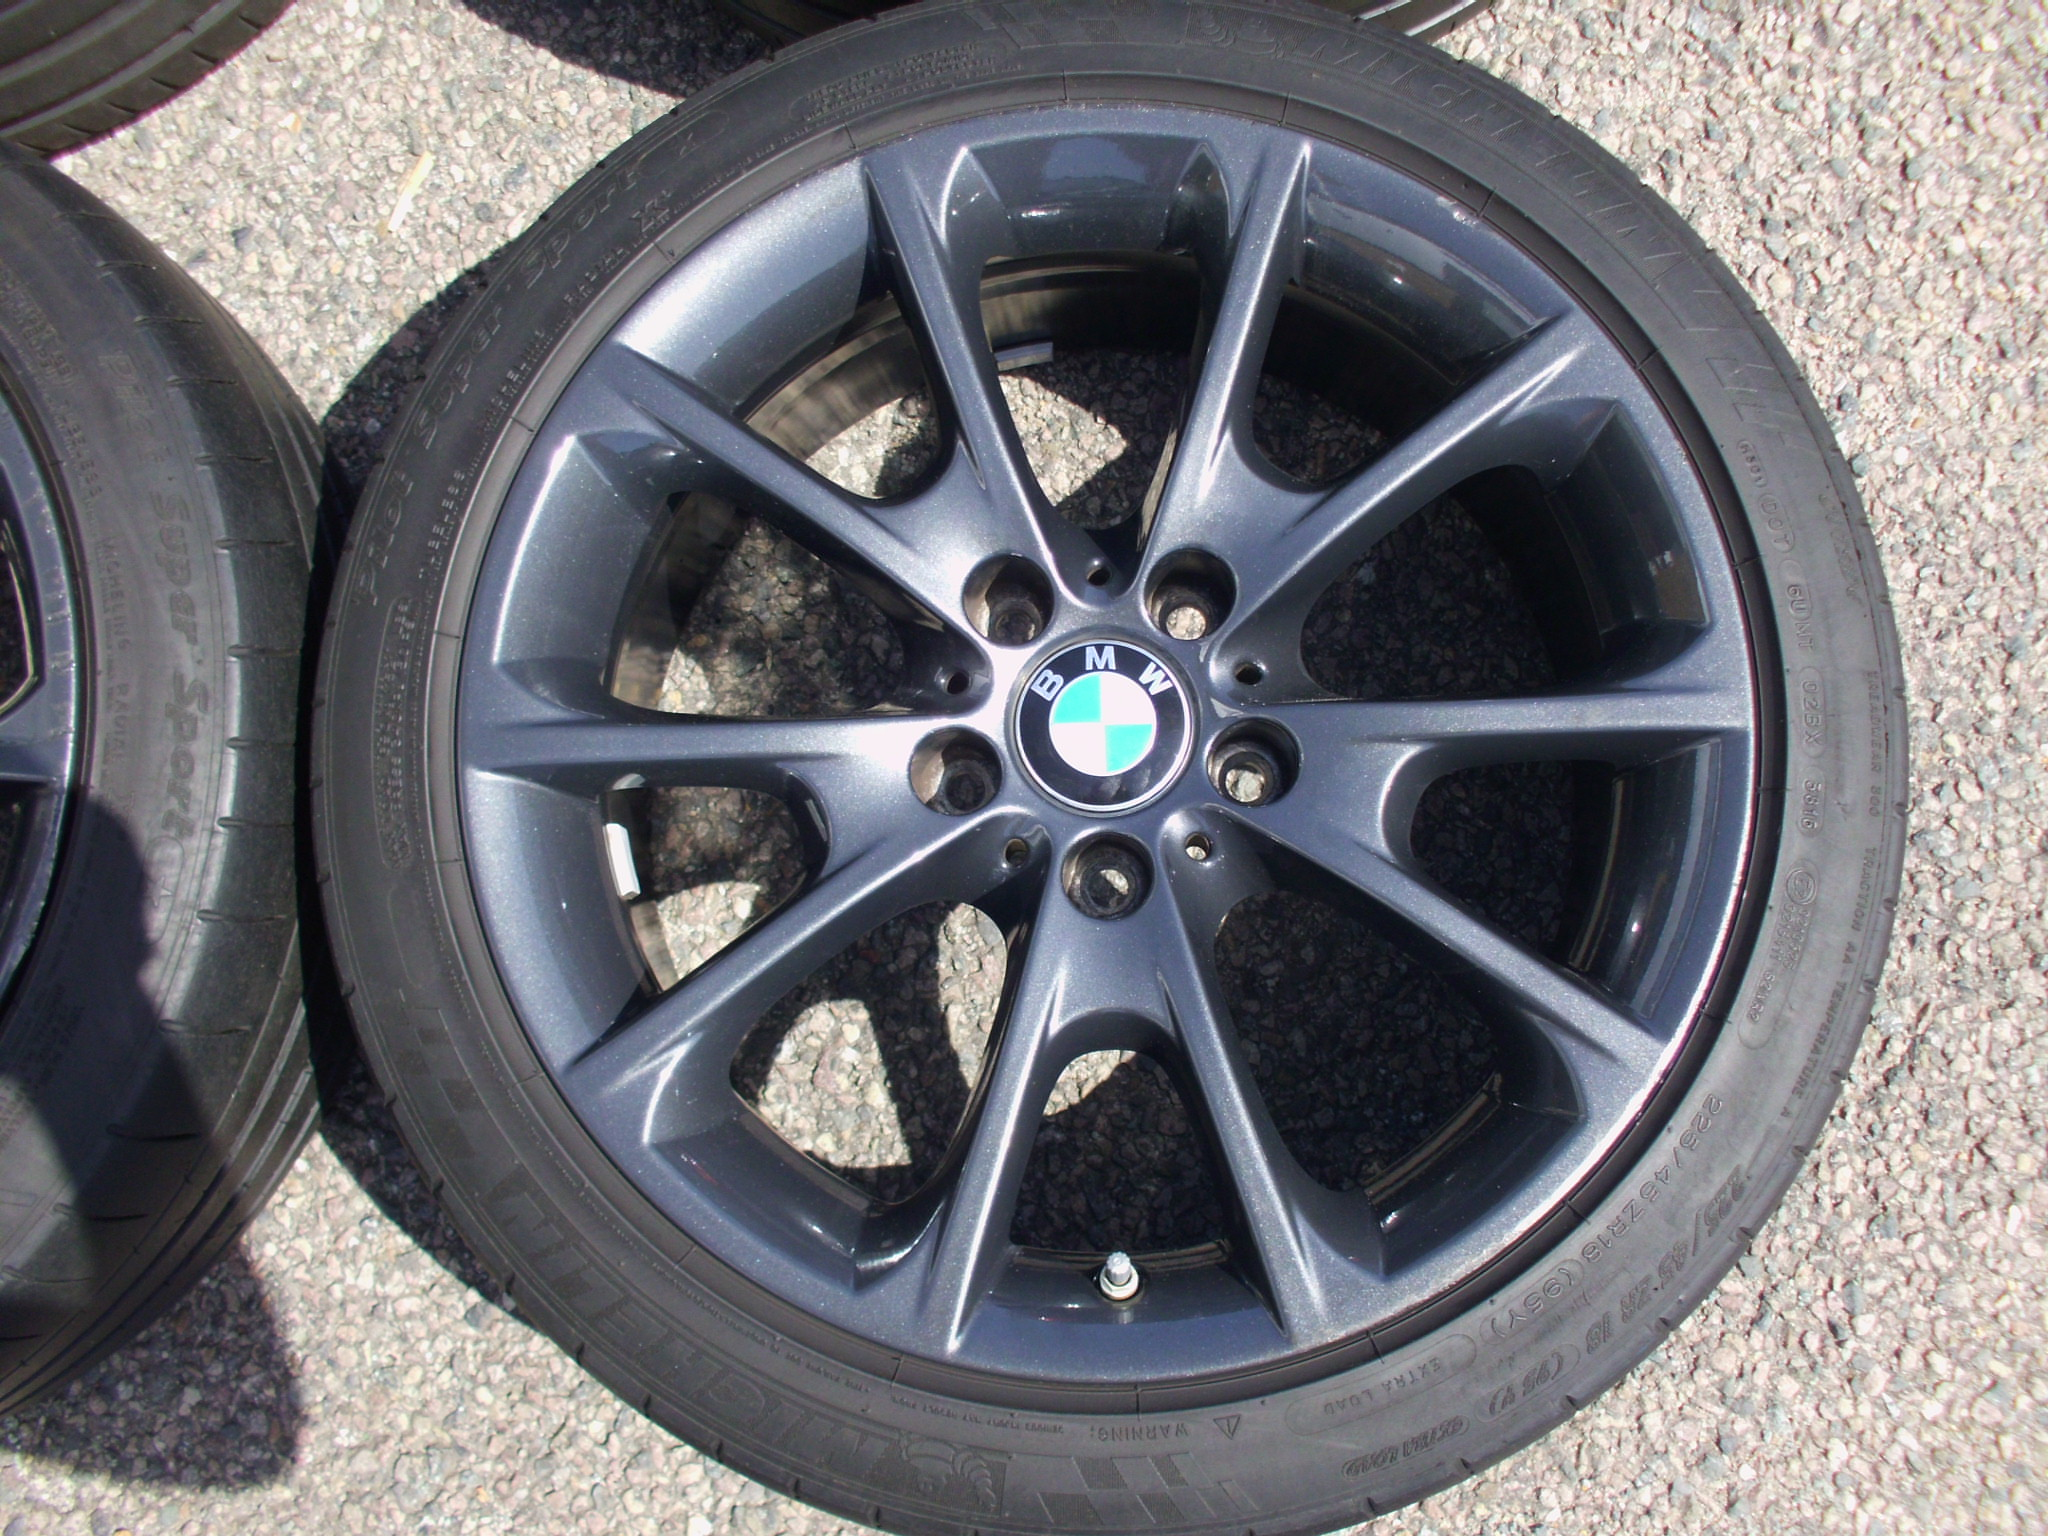 "USED 18"" GENUINE STYLE 398 SPORT ALLOY WHEELS, ORBIT GREY, WIDER REARS,GOOD CONDITION, INC MICHELIN PILOTS TYRES + TPMS"